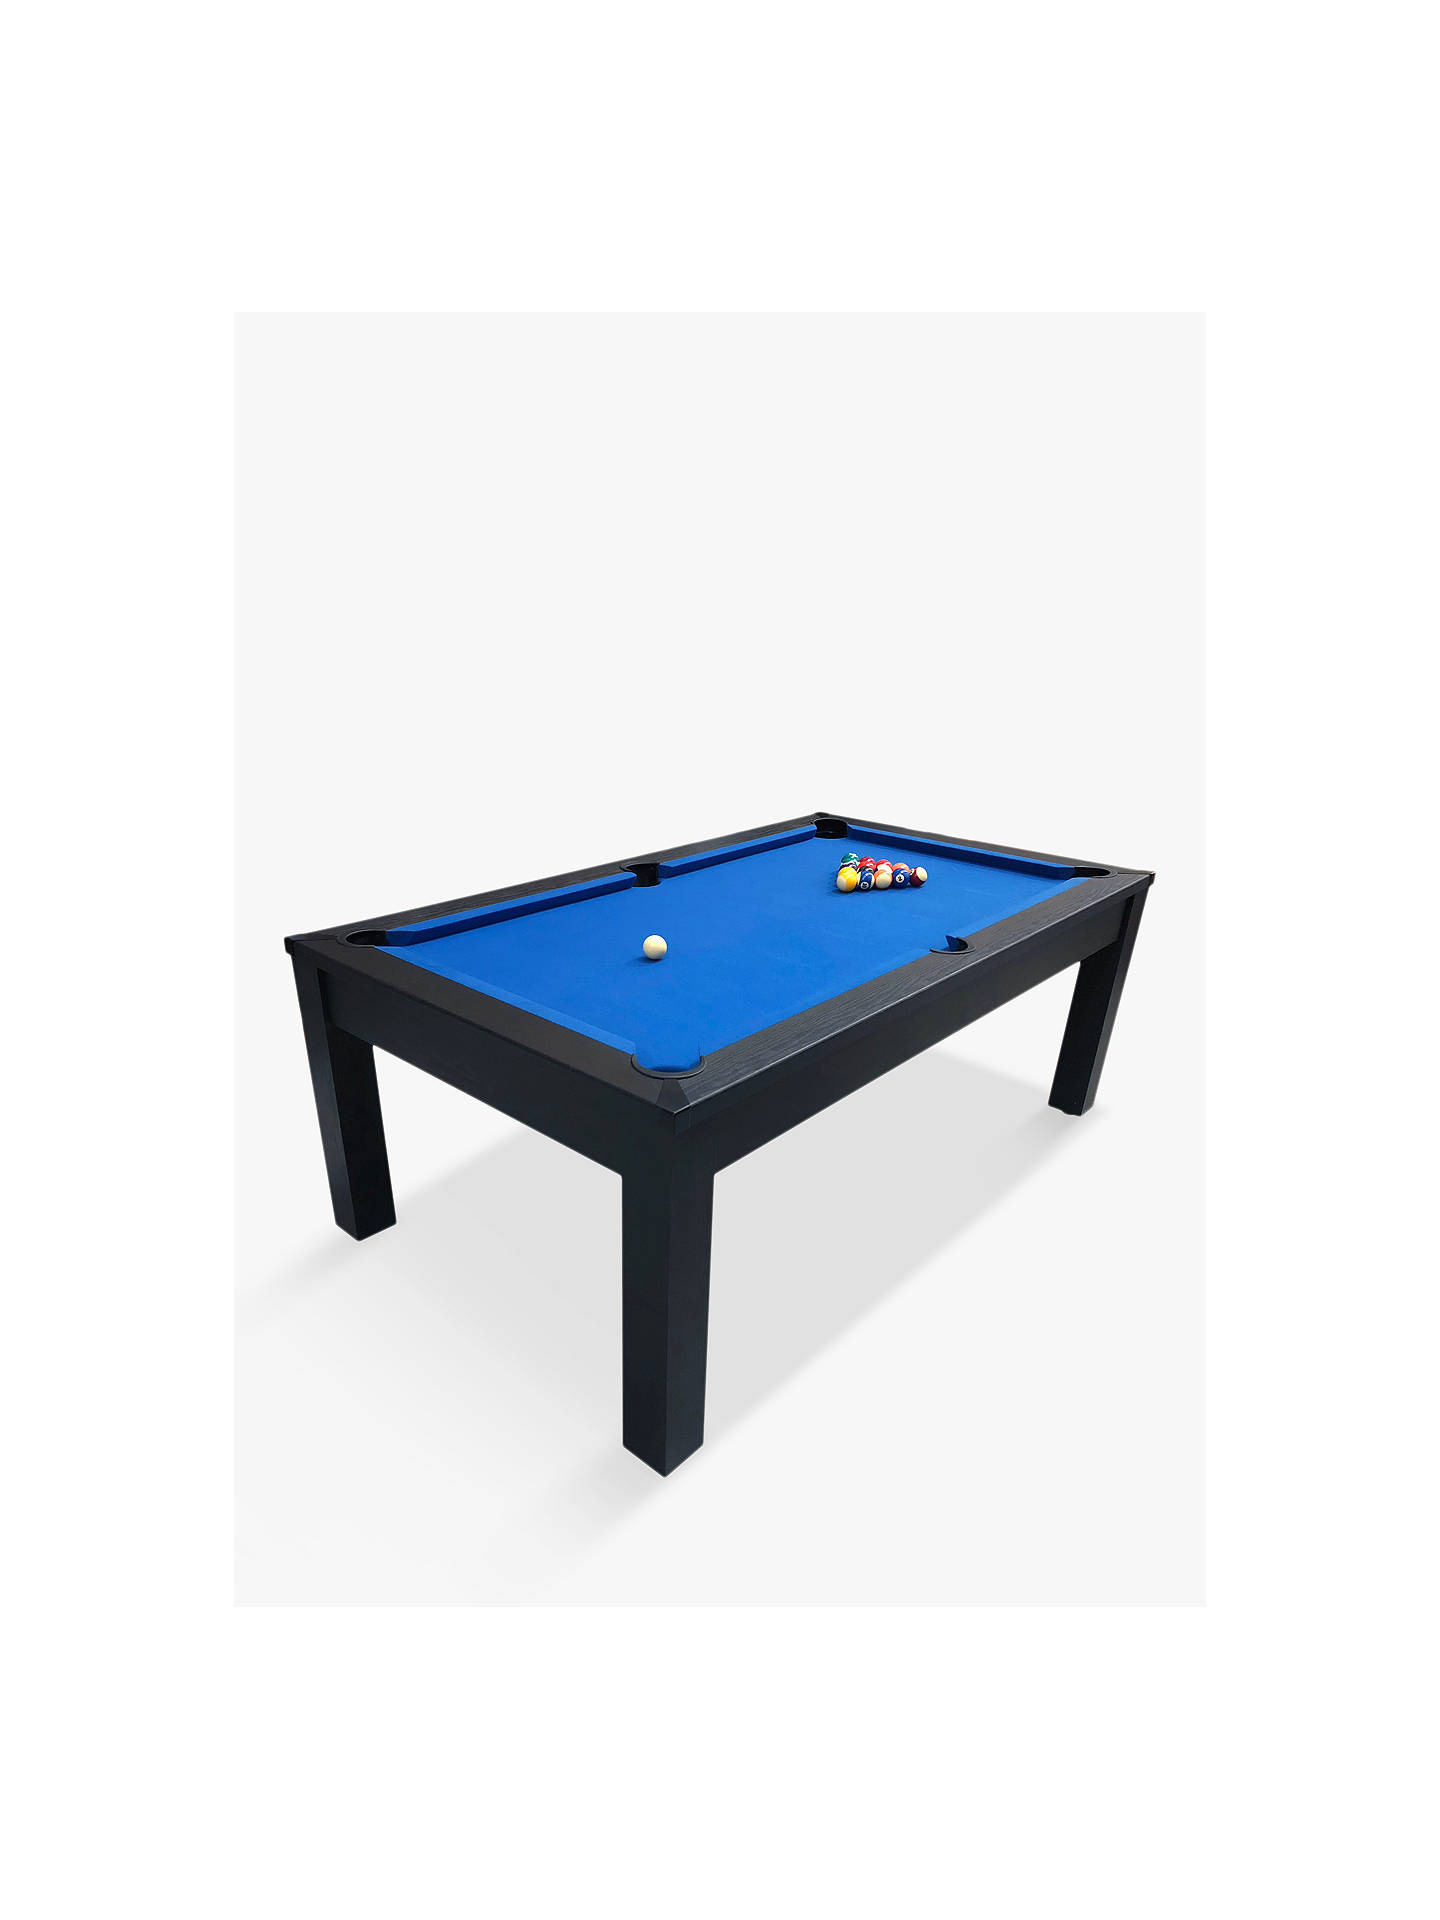 BuyBCE Riley 7ft Semi Pro Pool Table, Black/Blue Online at johnlewis.com